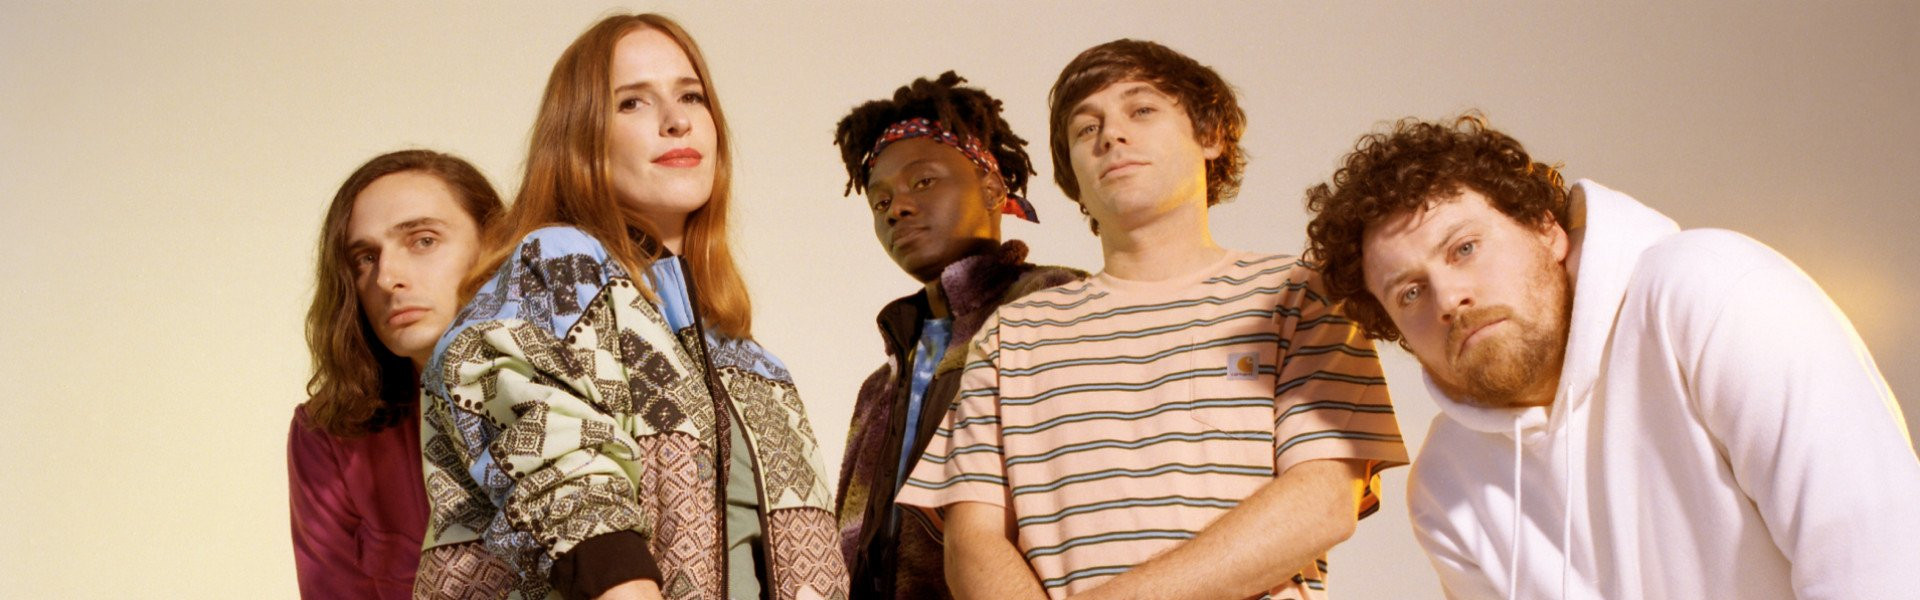 PSM Jazz Festival: Metronomy presented by %100 Music